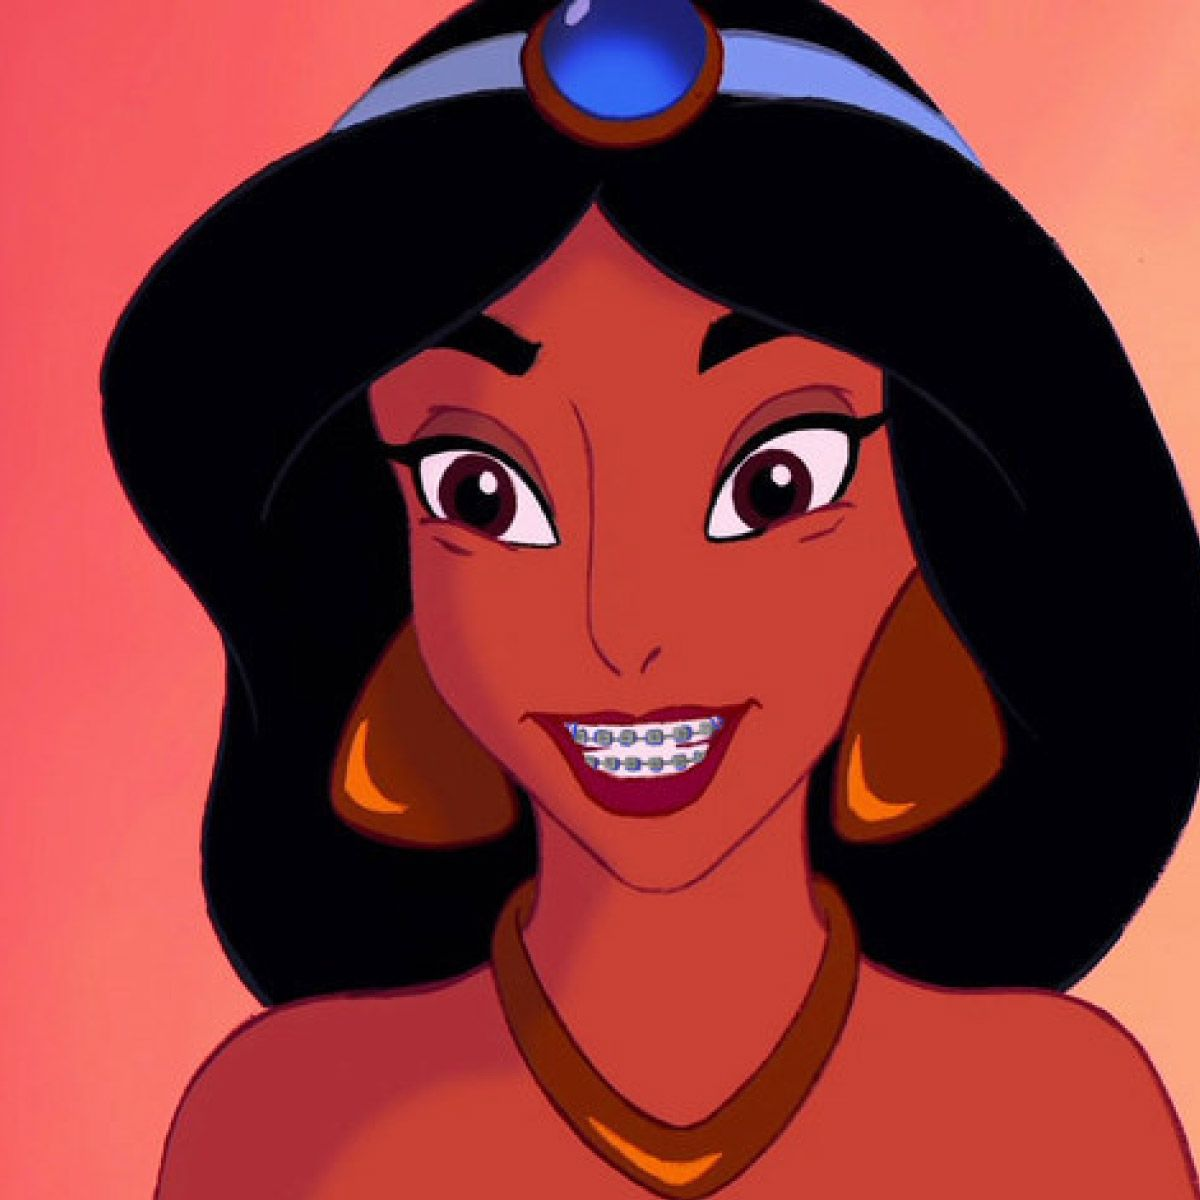 Disney Princesses With Braces Are Actually Really Adorable